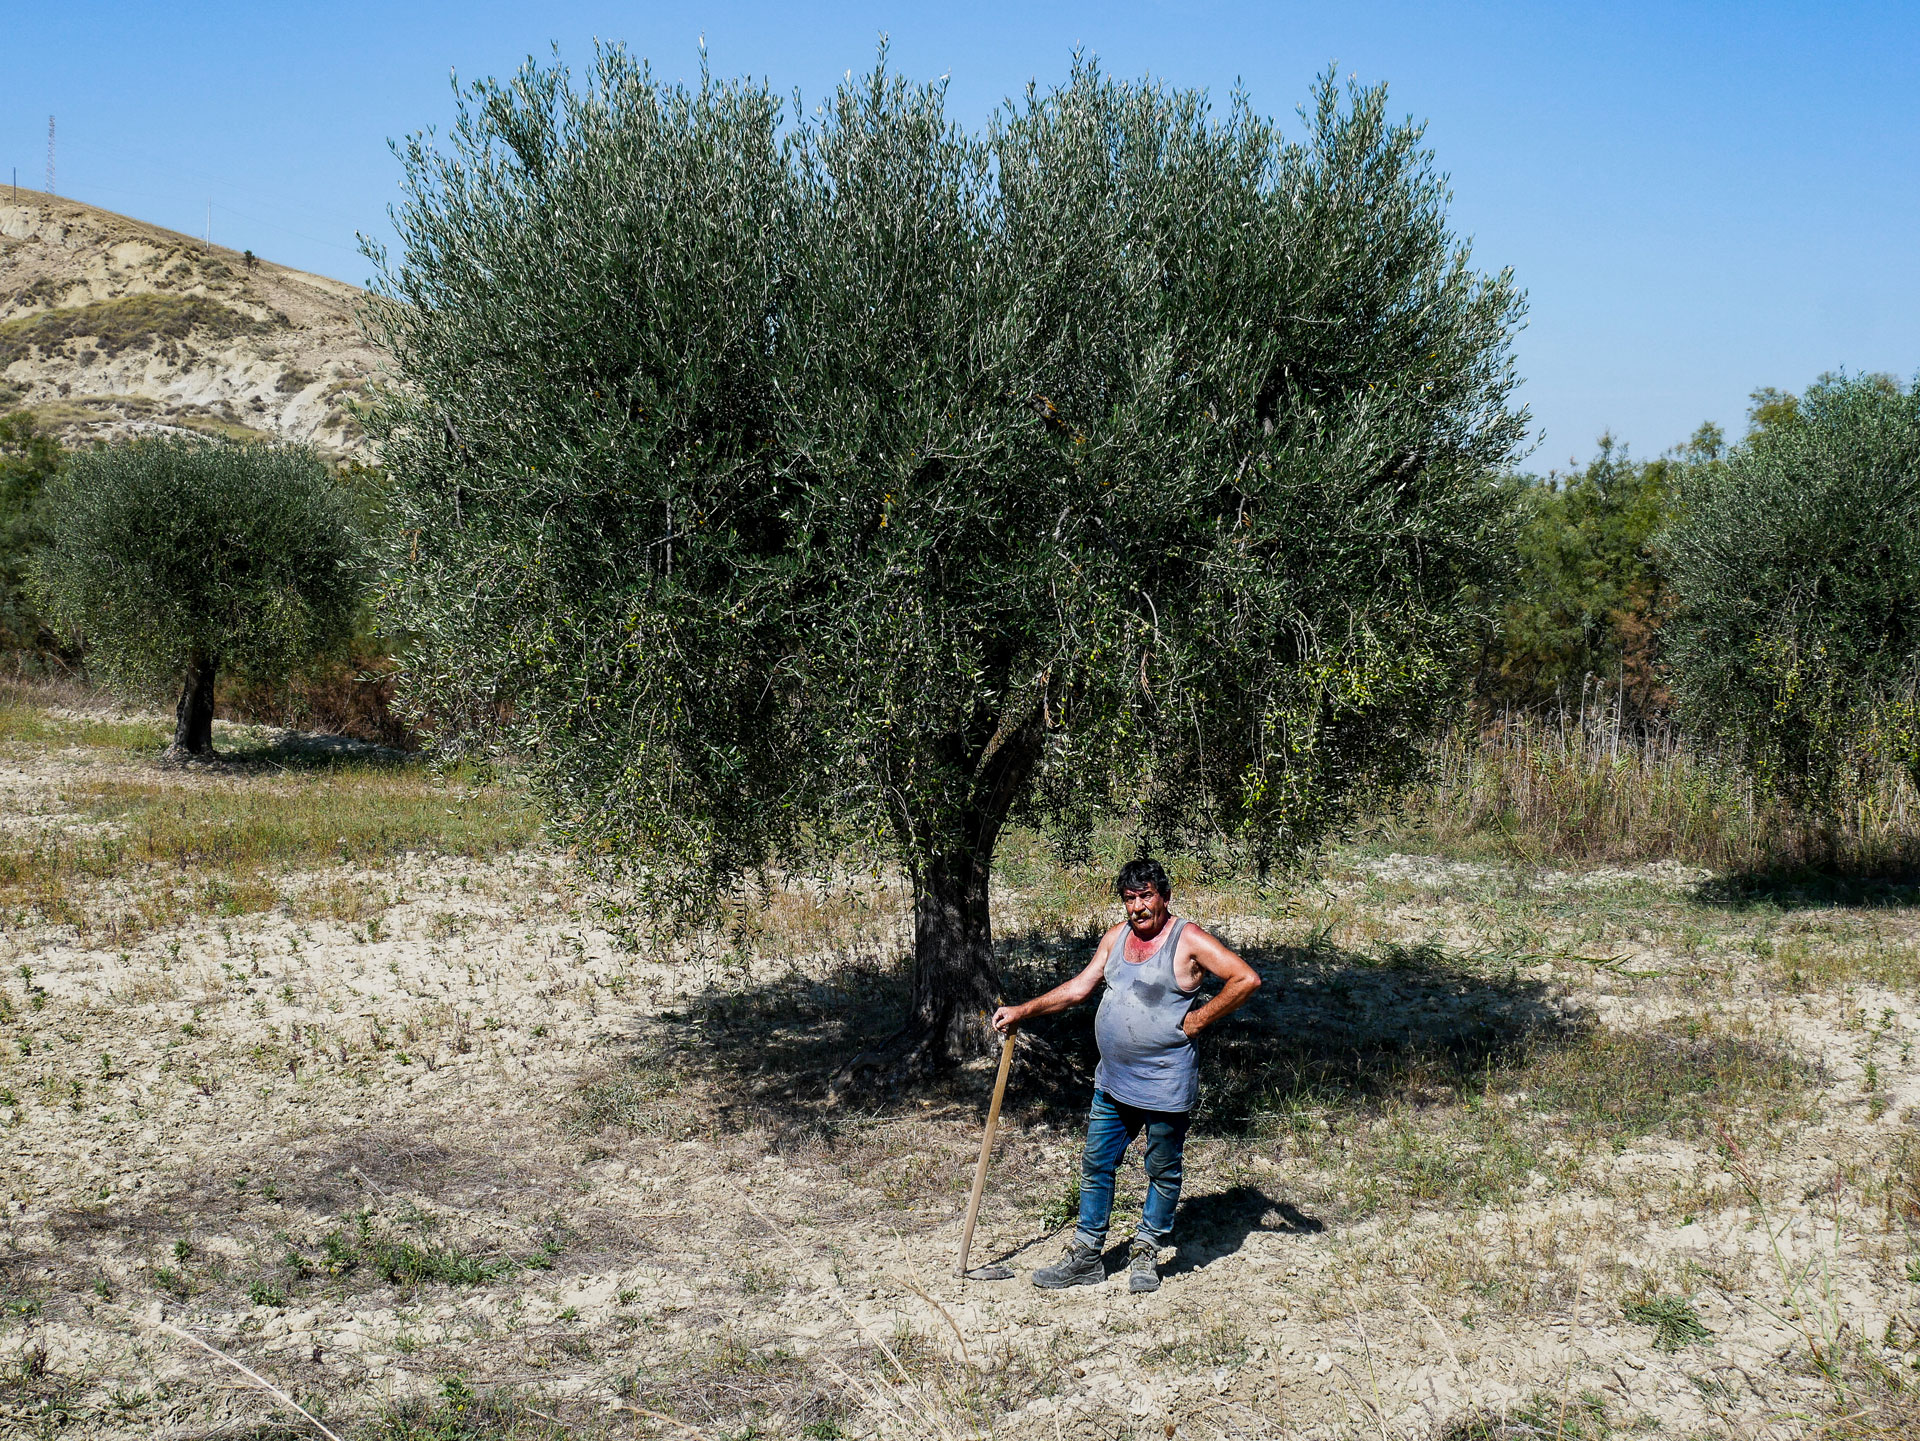 A countryman in an olive groves field